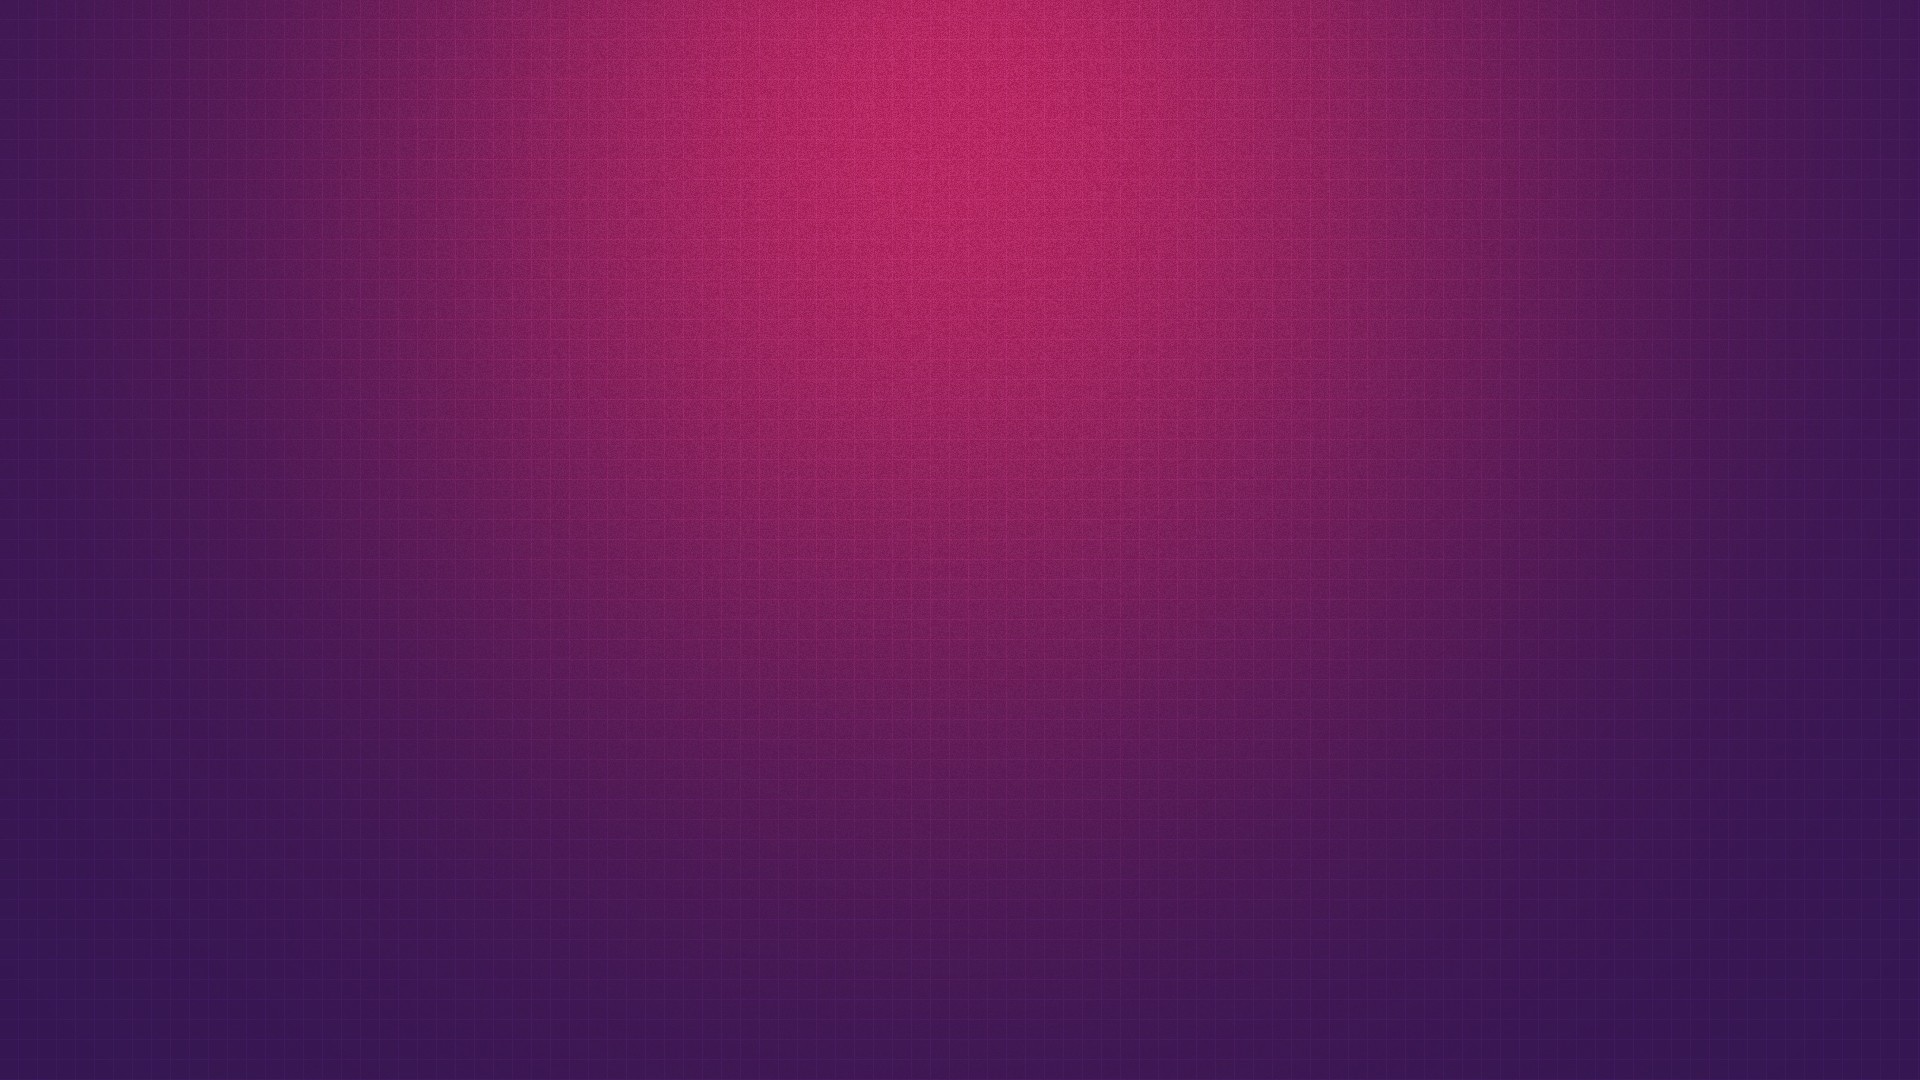 minimalistic purple gaussian blur HD Wallpaper